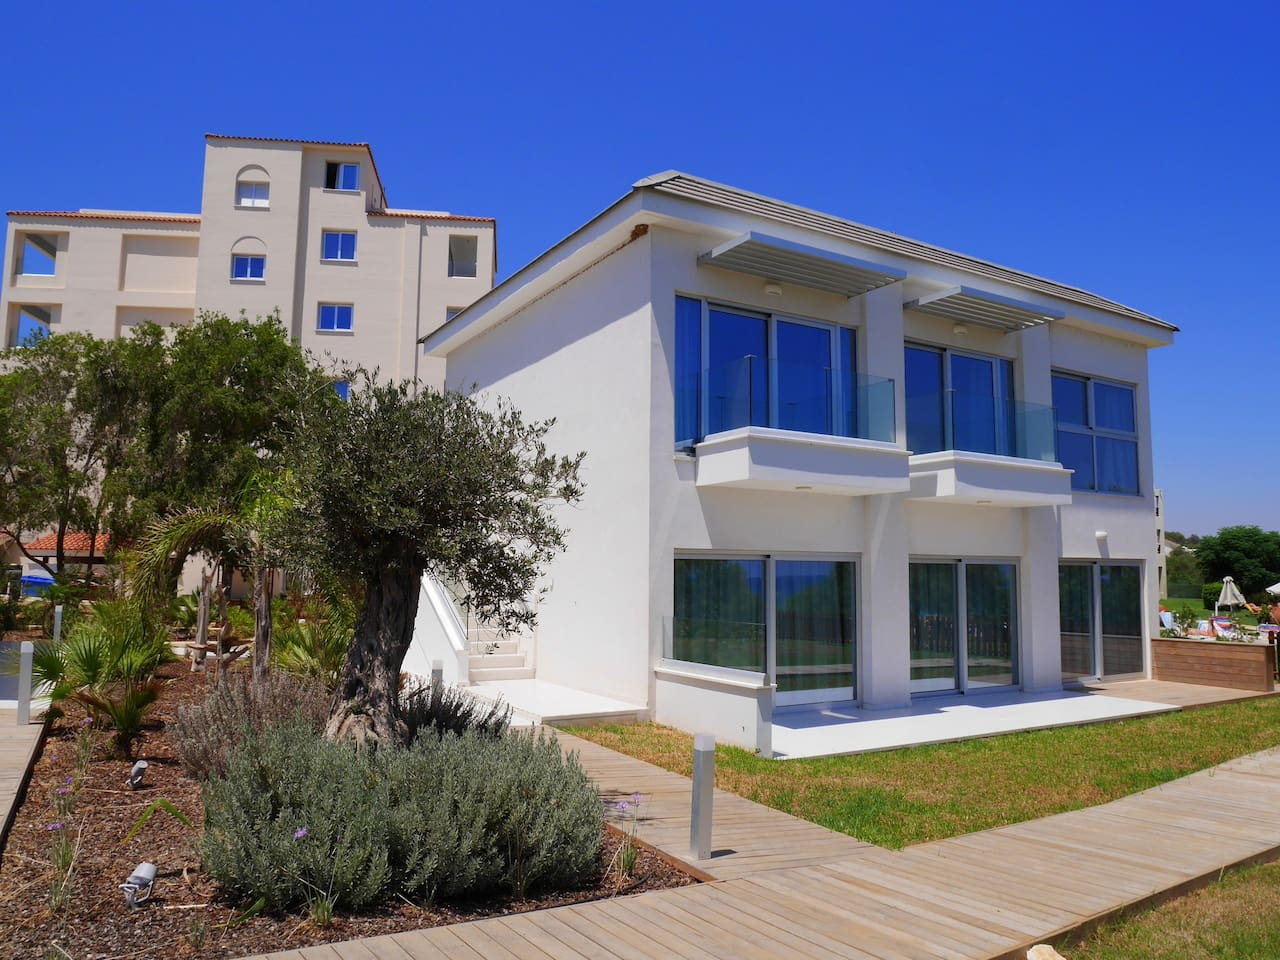 2 Bed Luxury Apt with Large Communal Pool - B2-001 photo 25894964